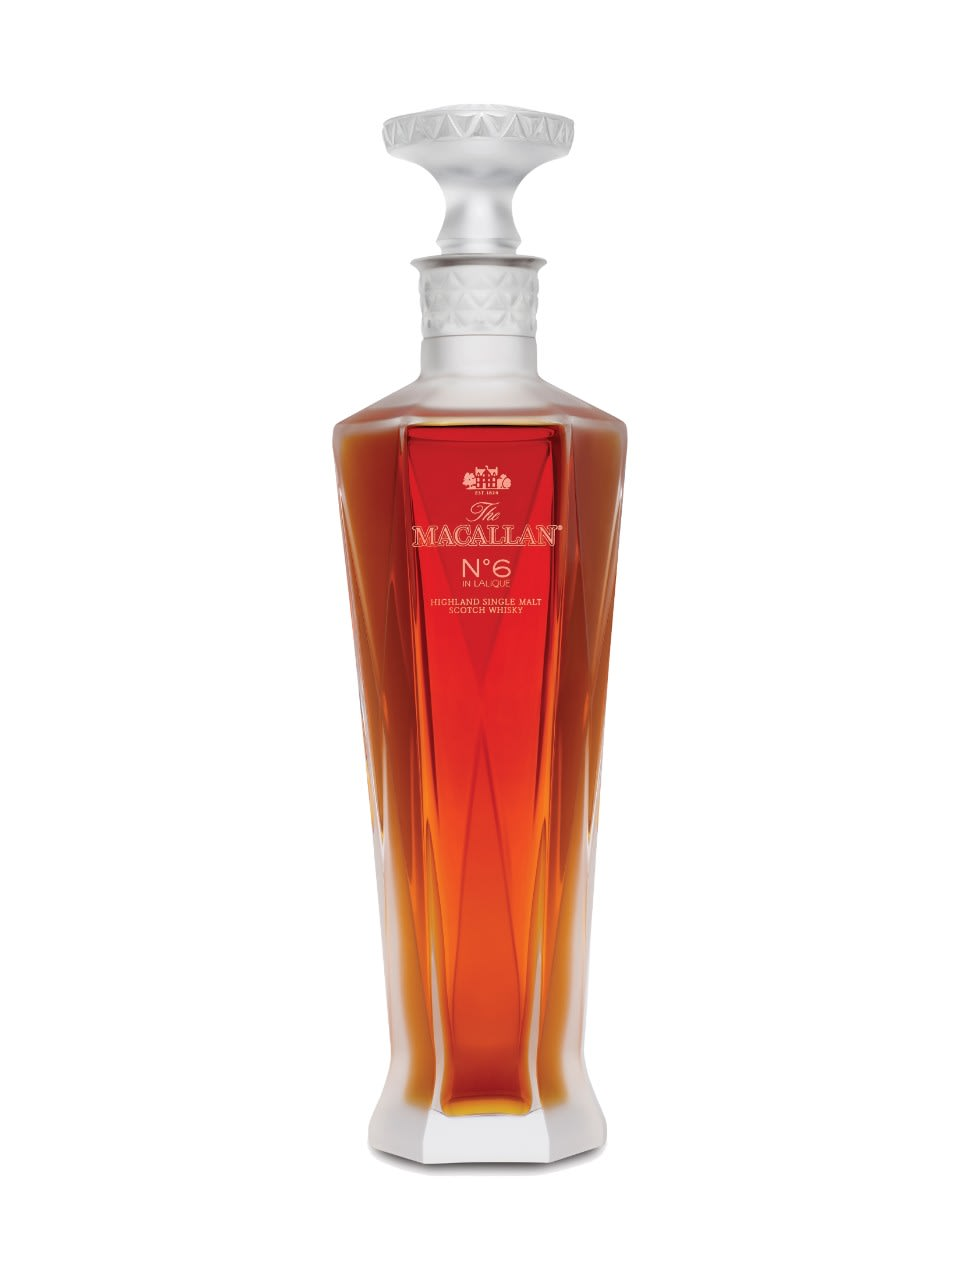 The Macallan 1824 Series No. 6 Highland Single Malt